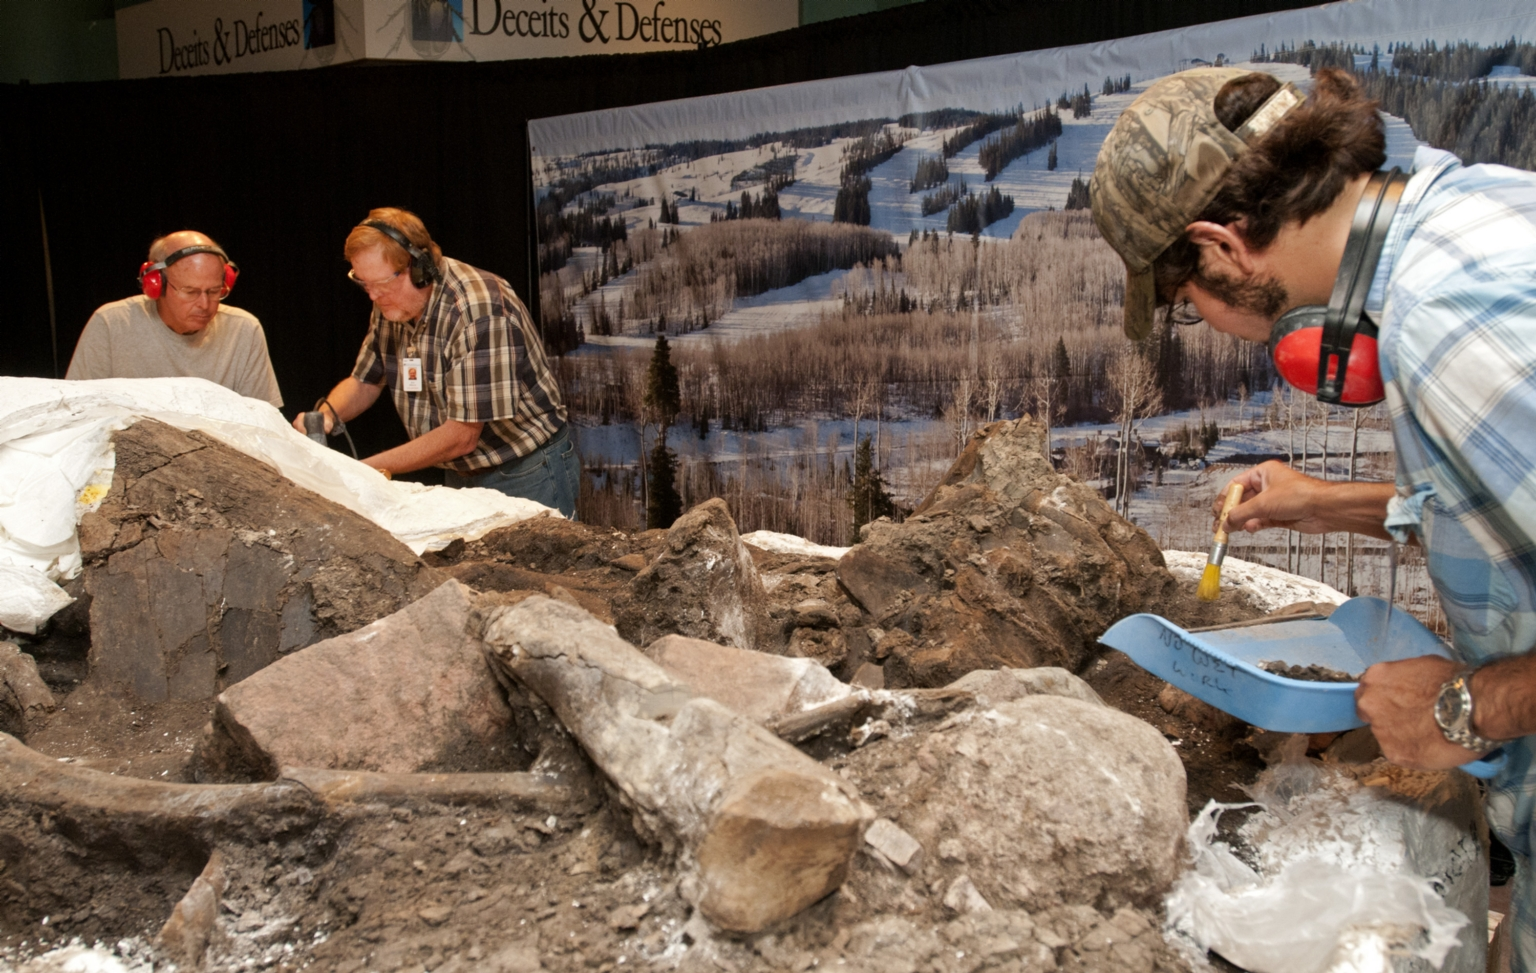 Working on Mammoth in Pop-up Exhibit